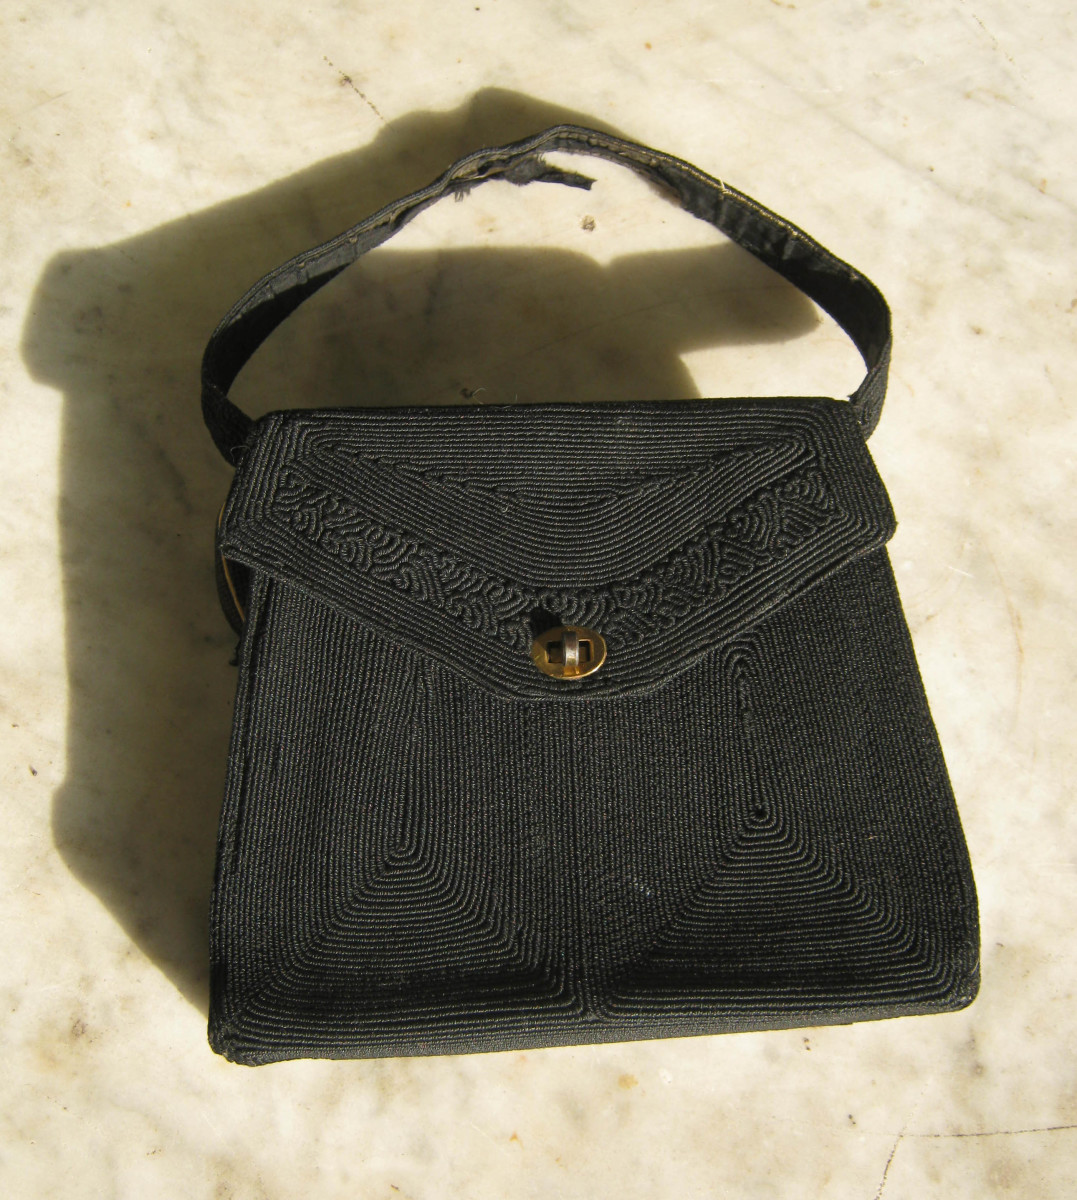 Vintage bag from the 1940s